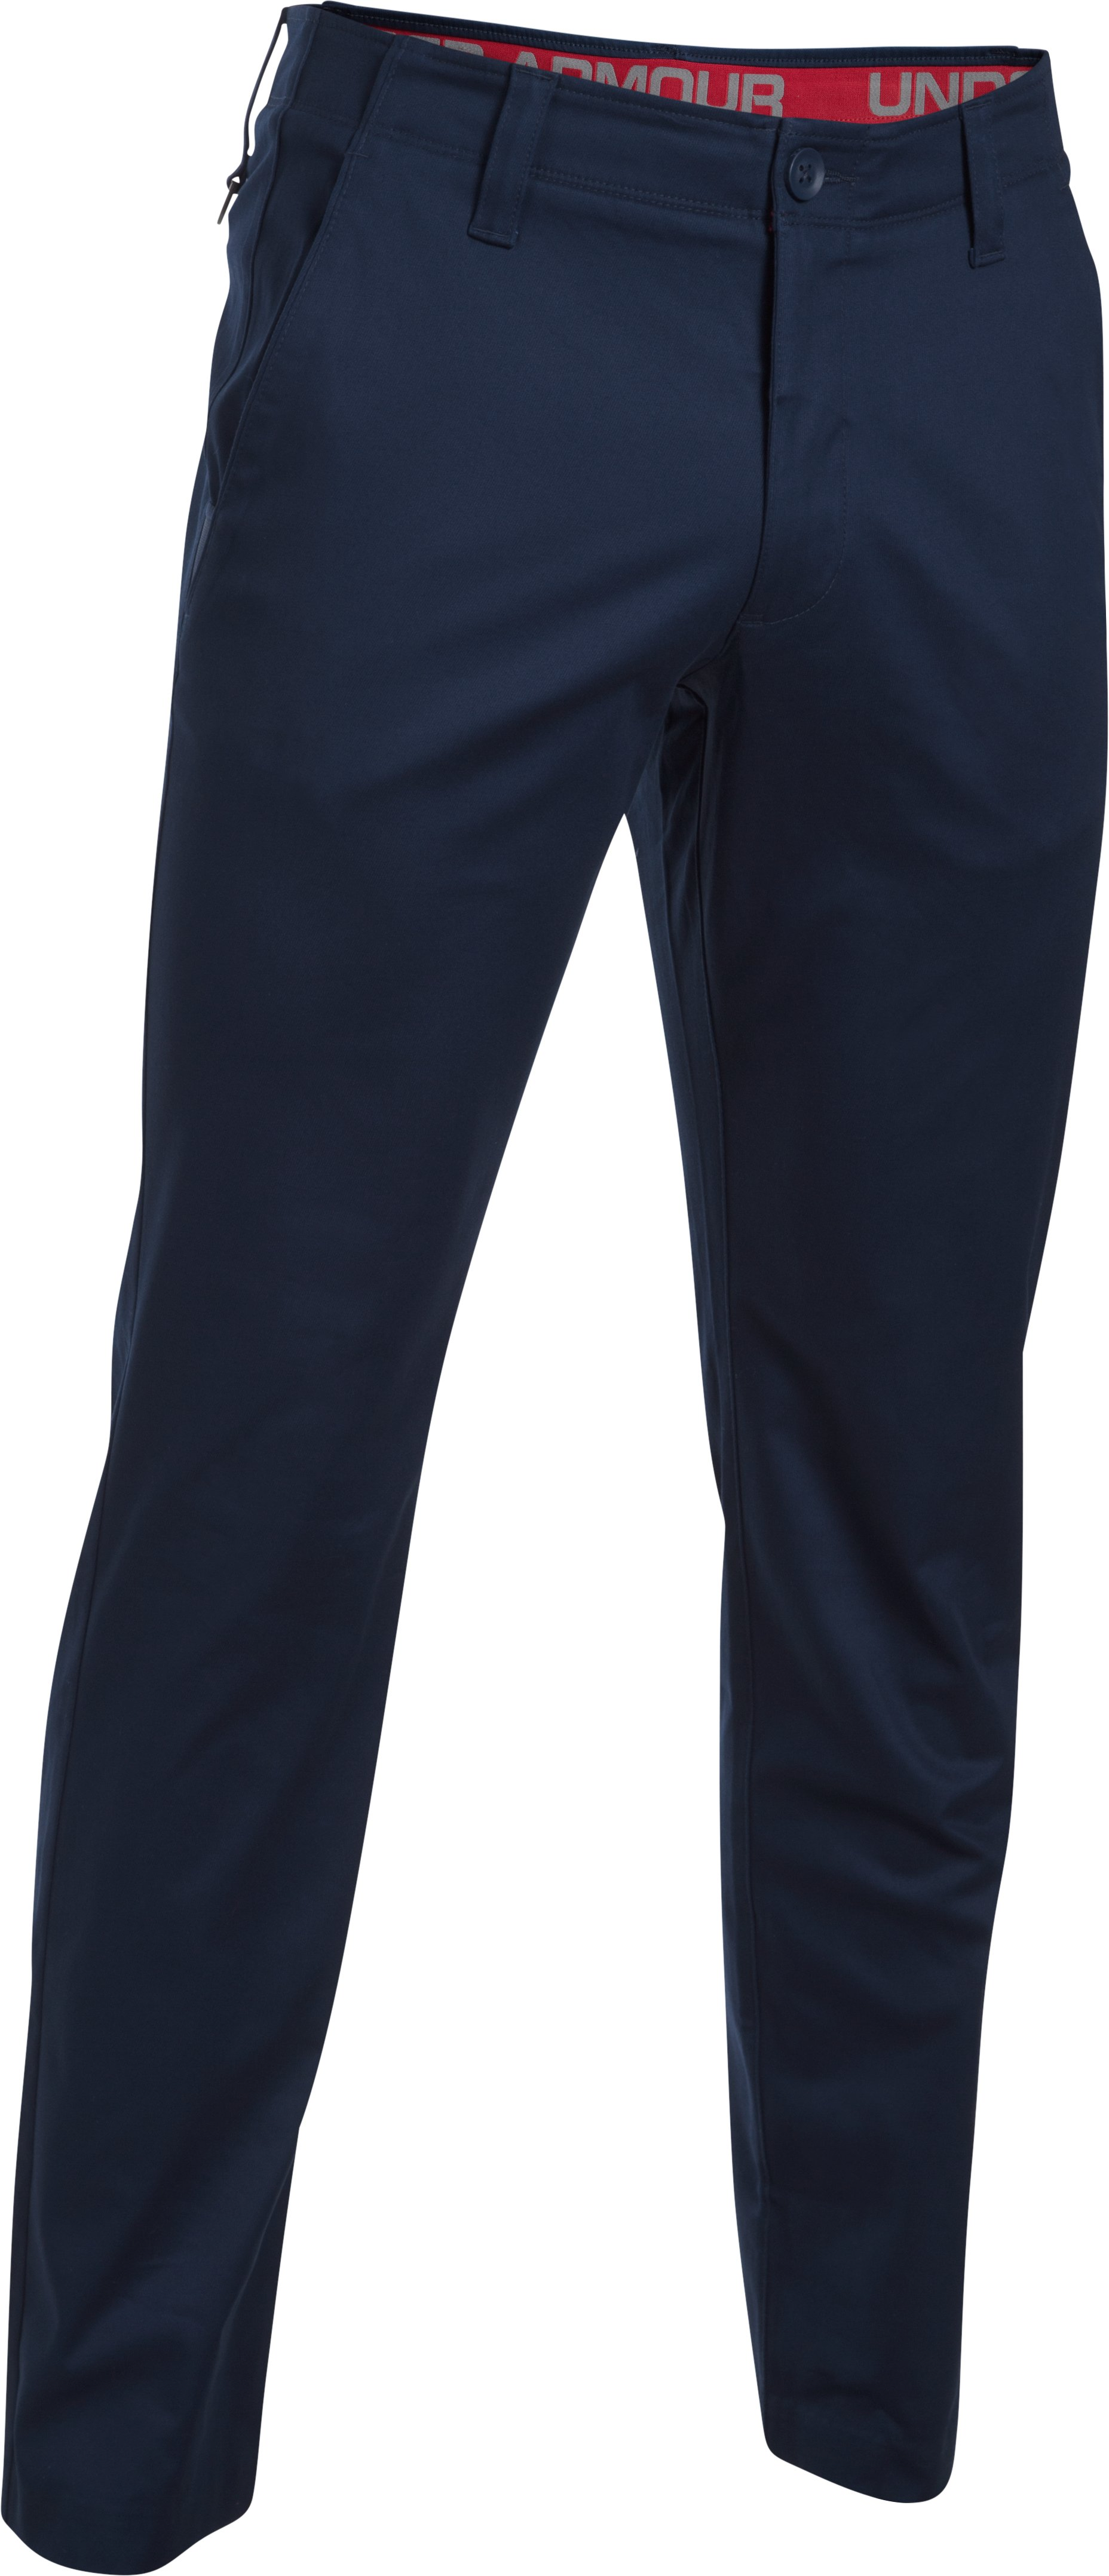 Men's UA Performance Chino — Tapered Leg, Midnight Navy